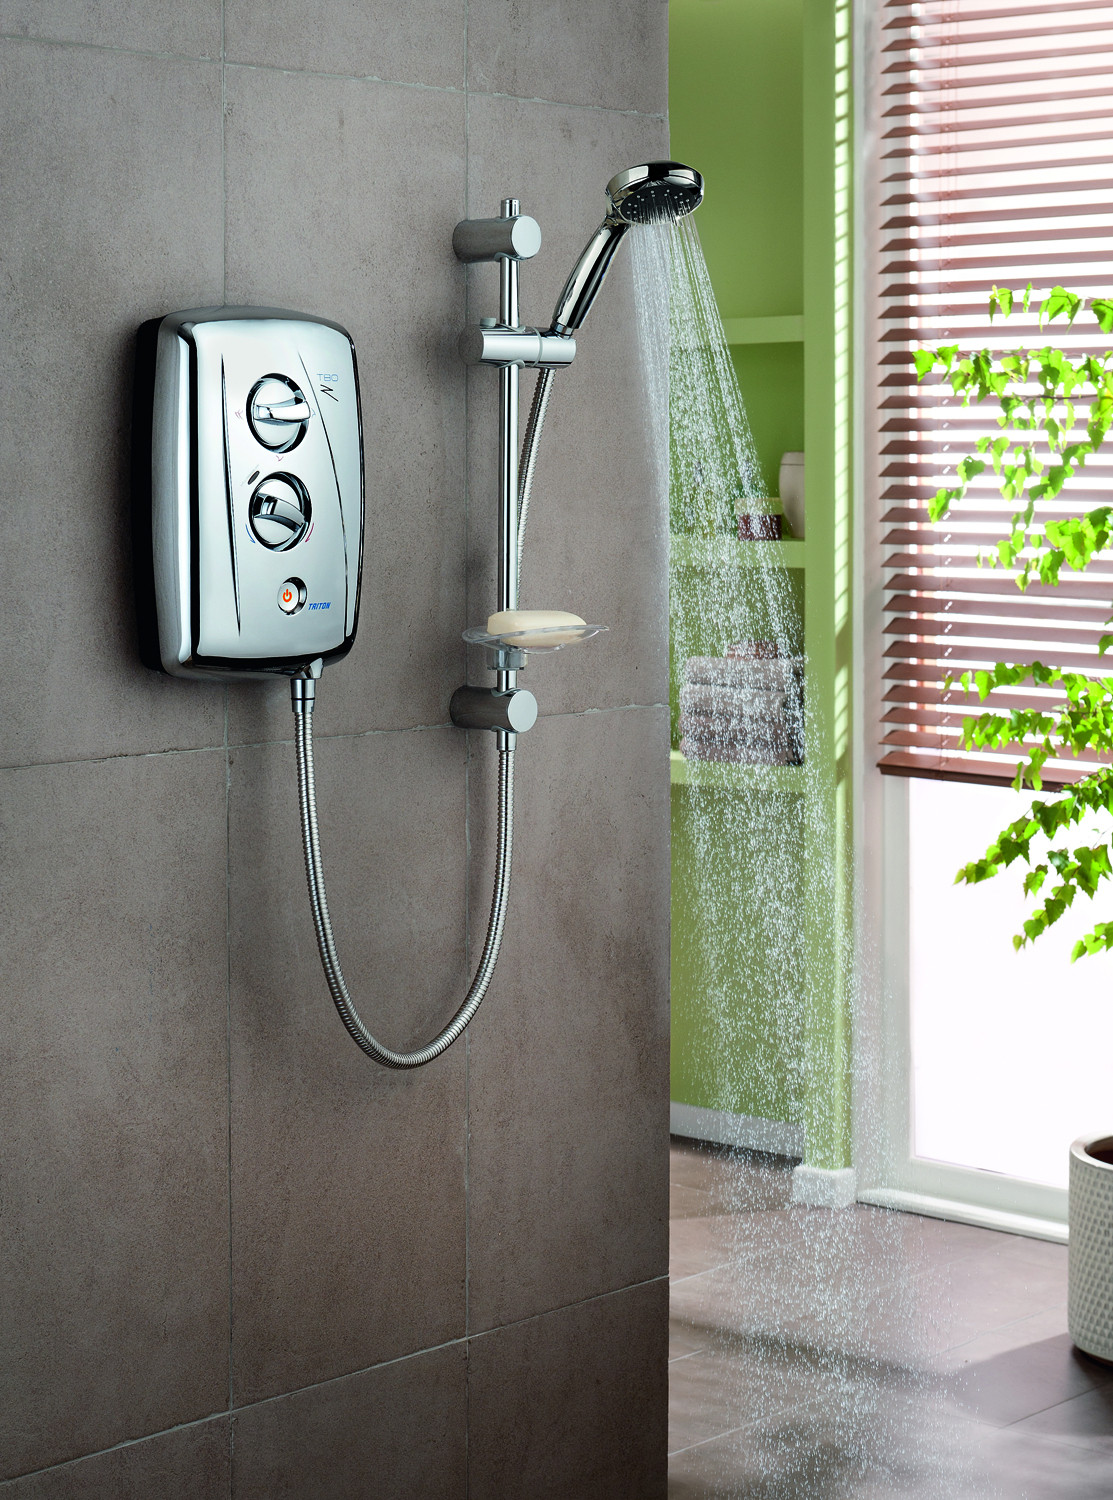 T80z 95kw Fast Fit Electric Shower Chrome Frontlinebathroomscom How To Wire An More Views